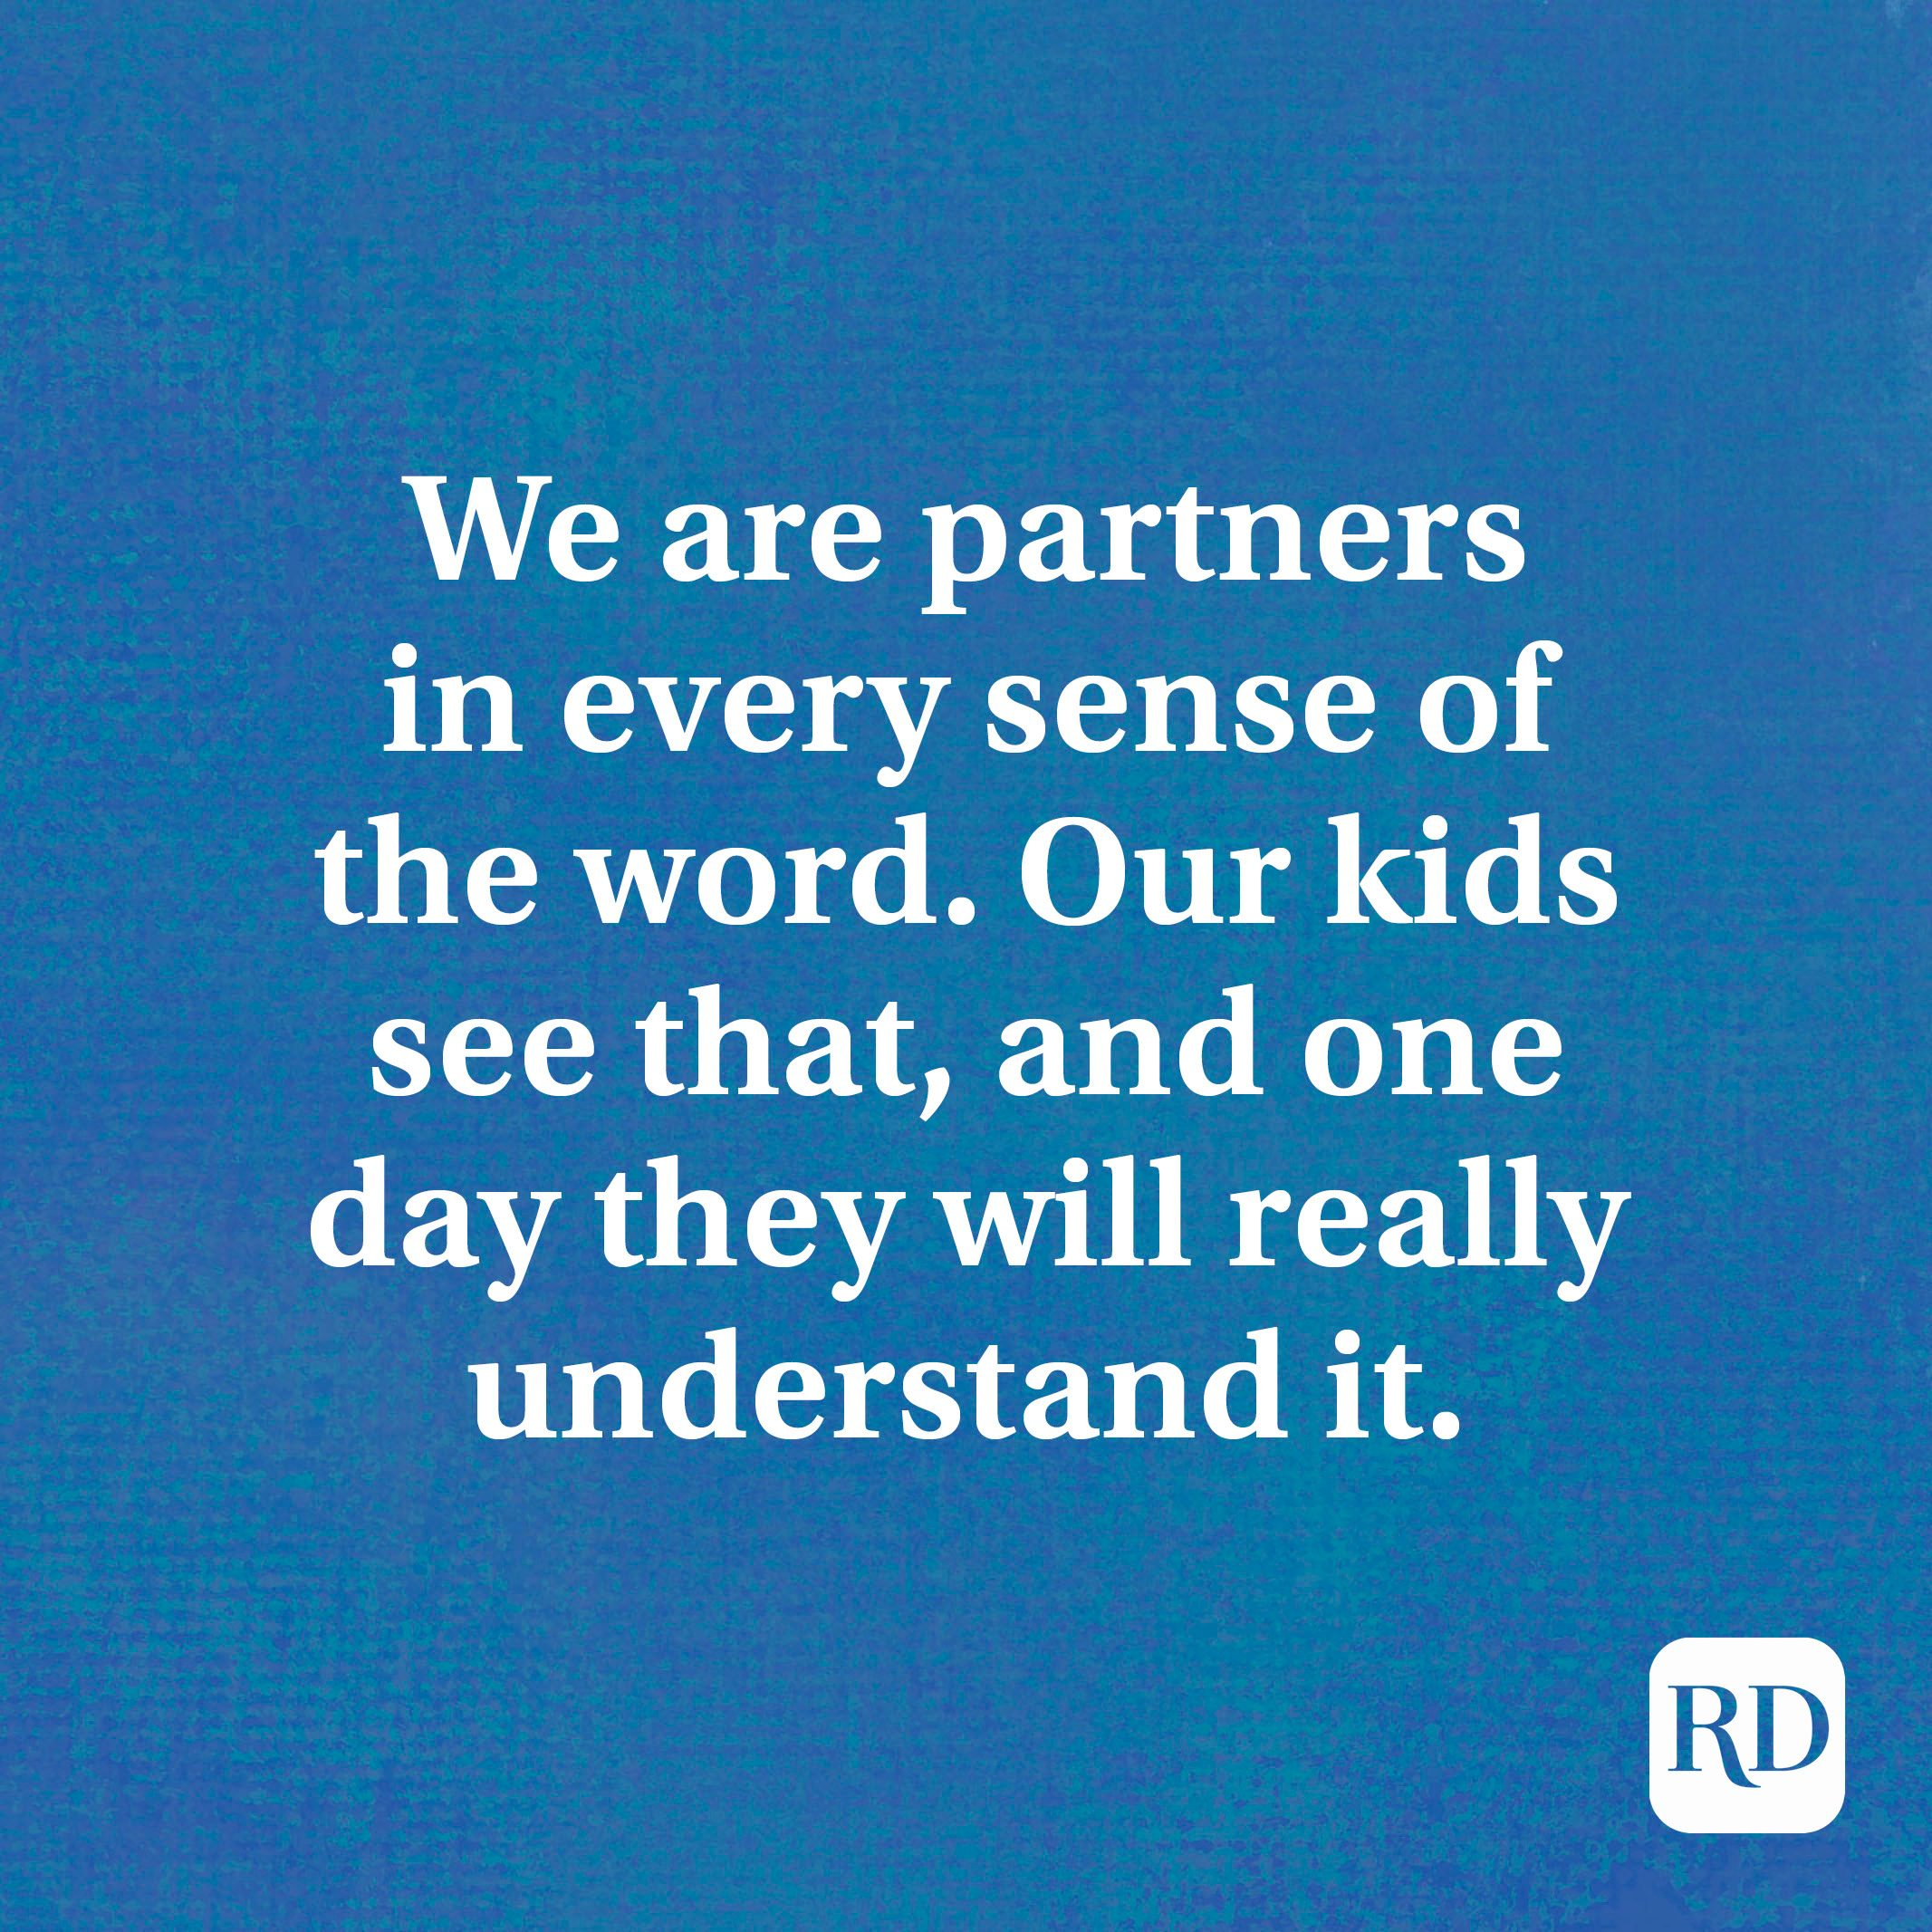 We are partners in every sense of the word. Our kids see that, and one day they will really understand it.